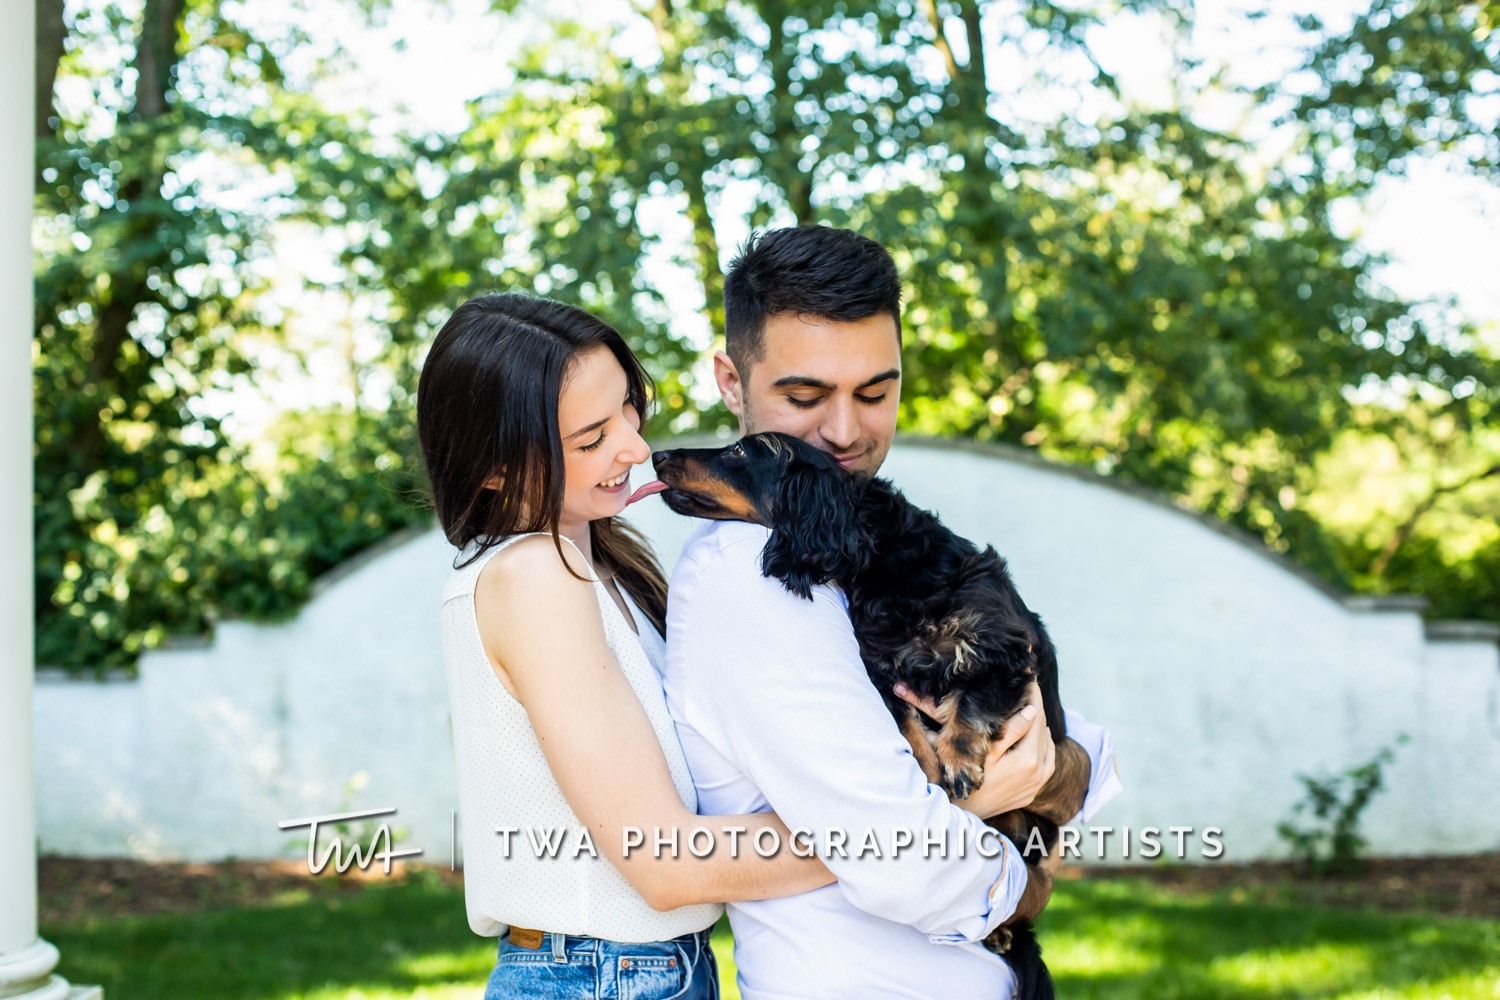 Chicago-Wedding-Photographer-TWA-Photographic-Artists-Cantigny-Park_Geraci_Vlahos_MJ-067